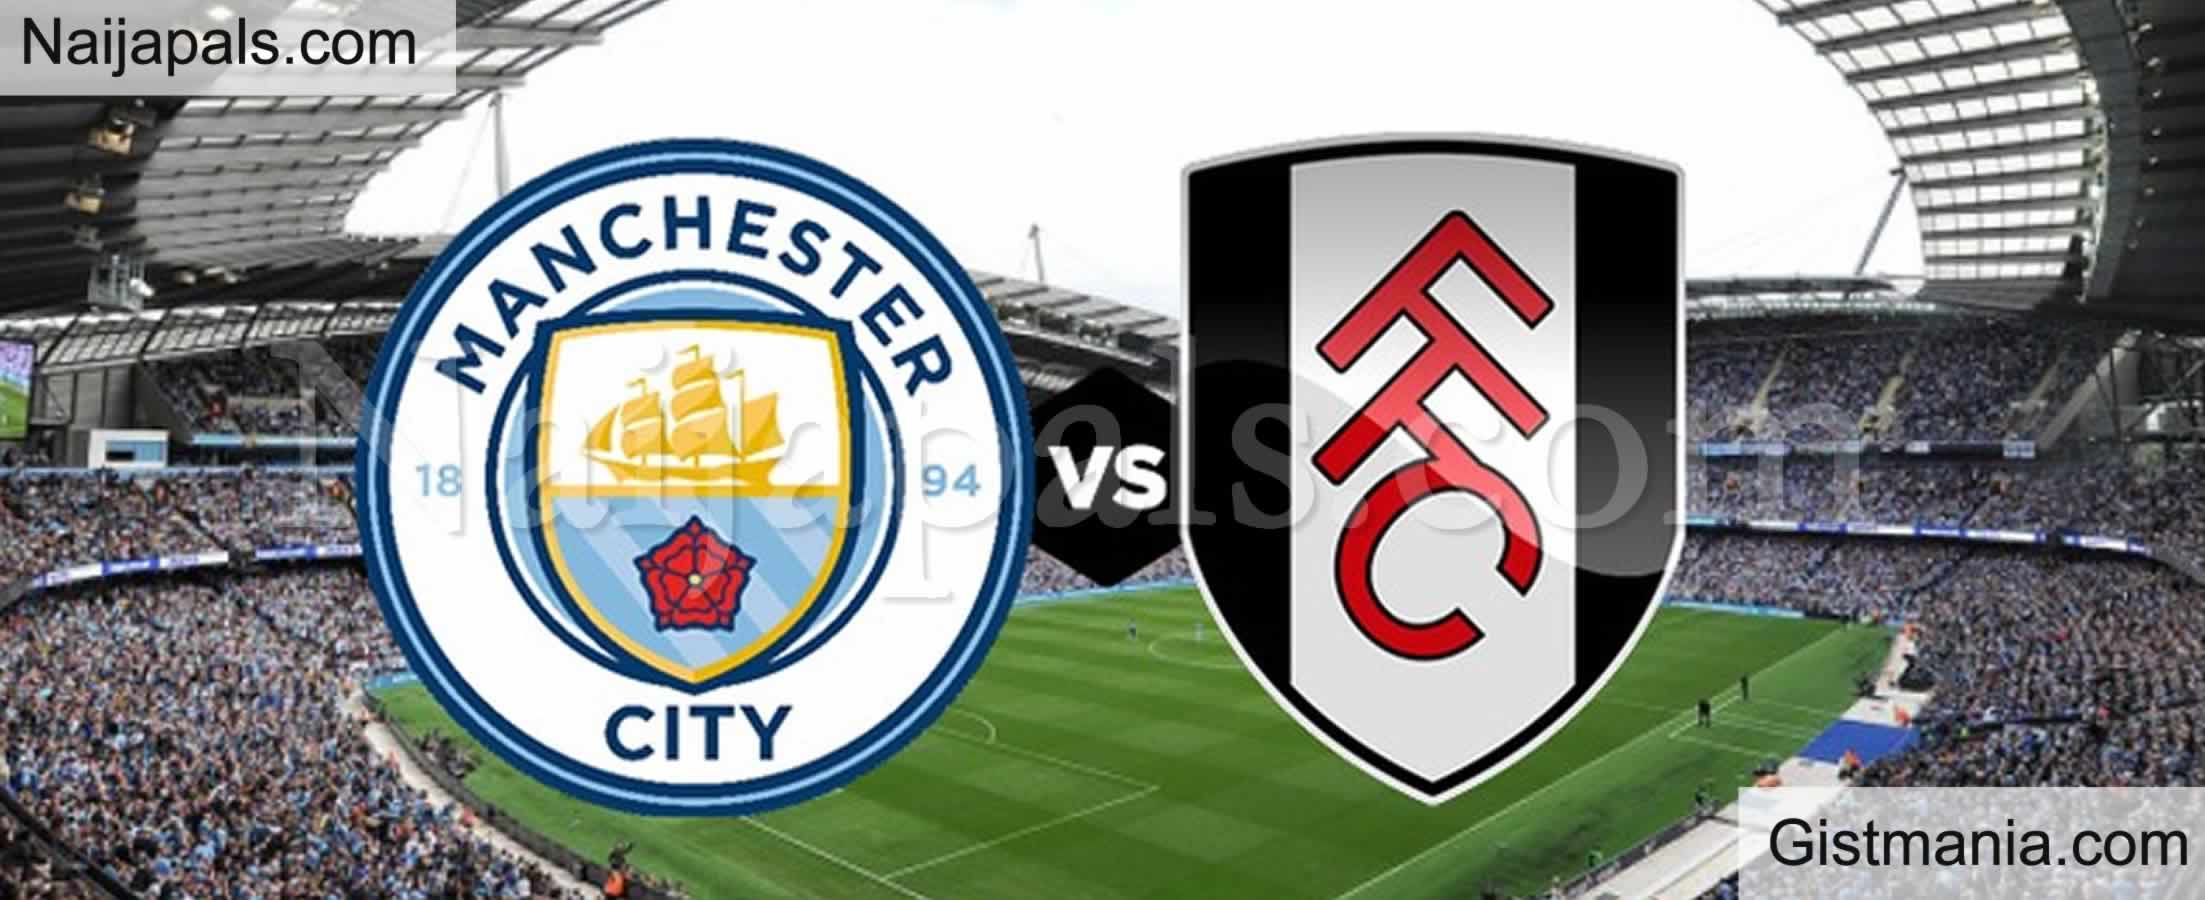 <img alt='.' class='lazyload' data-src='https://img.gistmania.com/emot/soccer.gif' /> <b>Manchester City v Fulham : English Premier League Match, Team News, Goal Scorers and Stats</b>